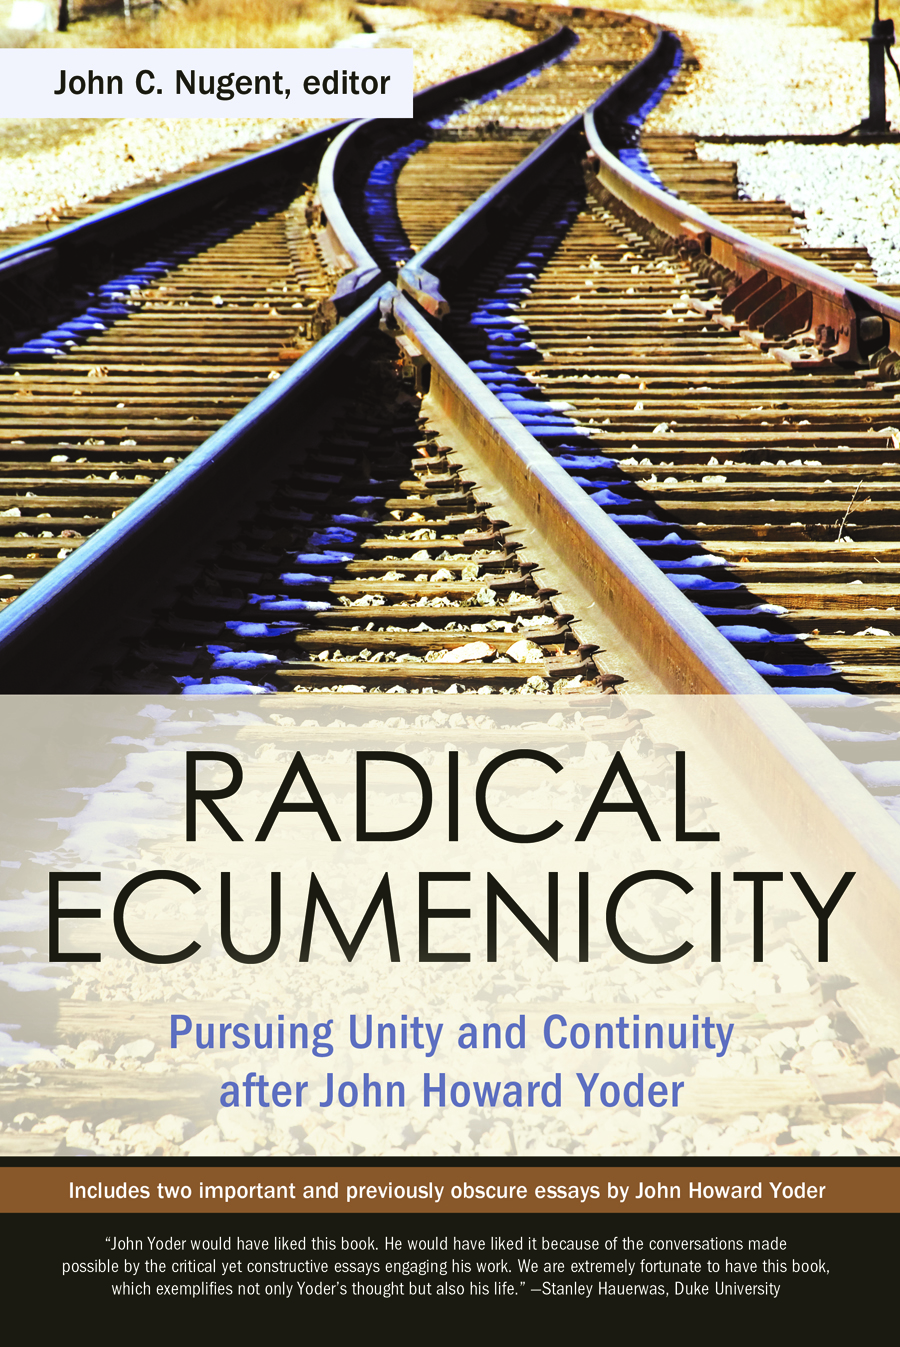 Radical Ecumenicity_final front cover.jpg